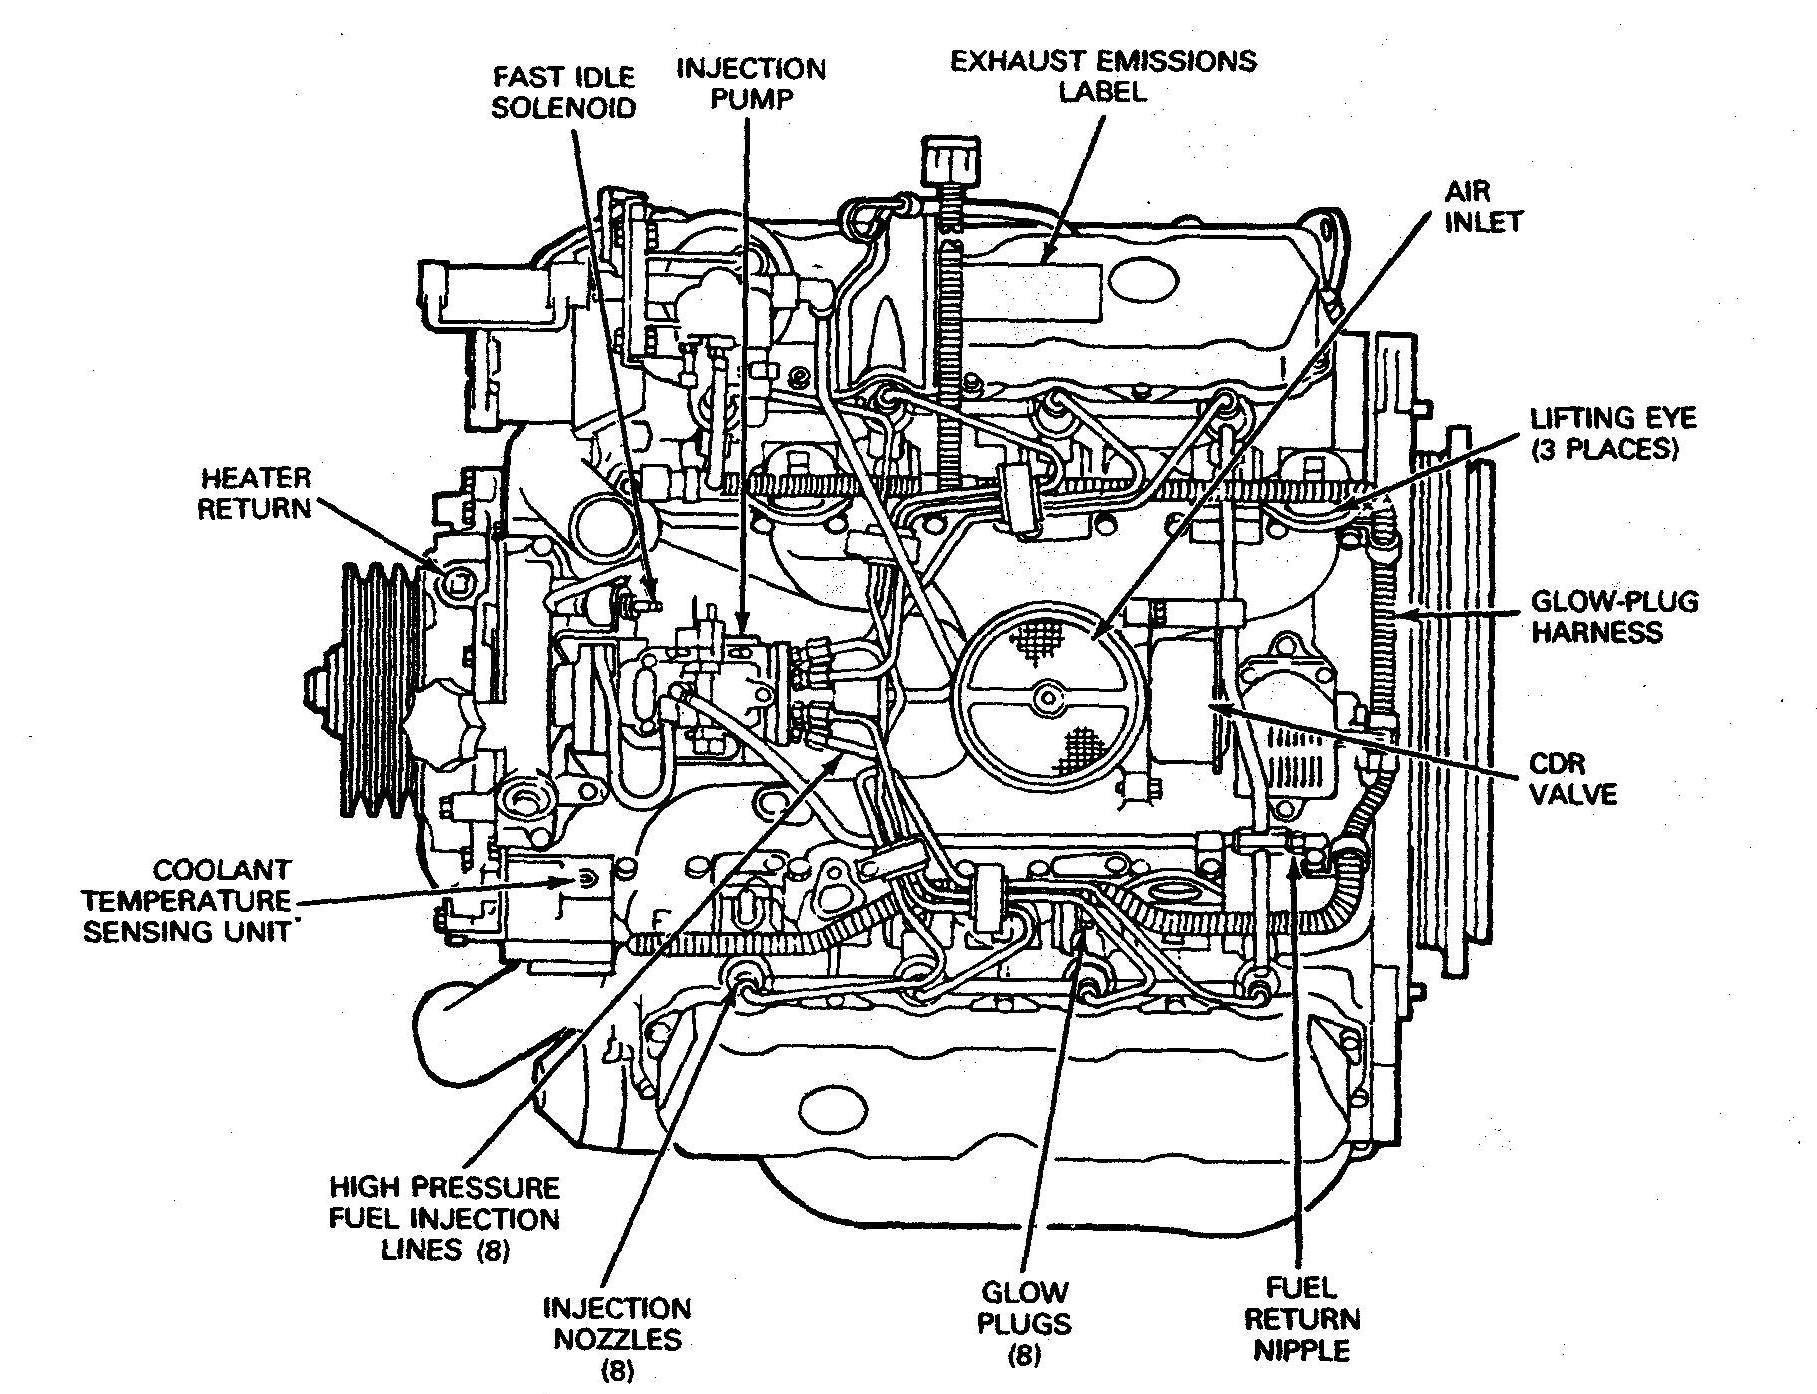 diesel engine combustion diagram